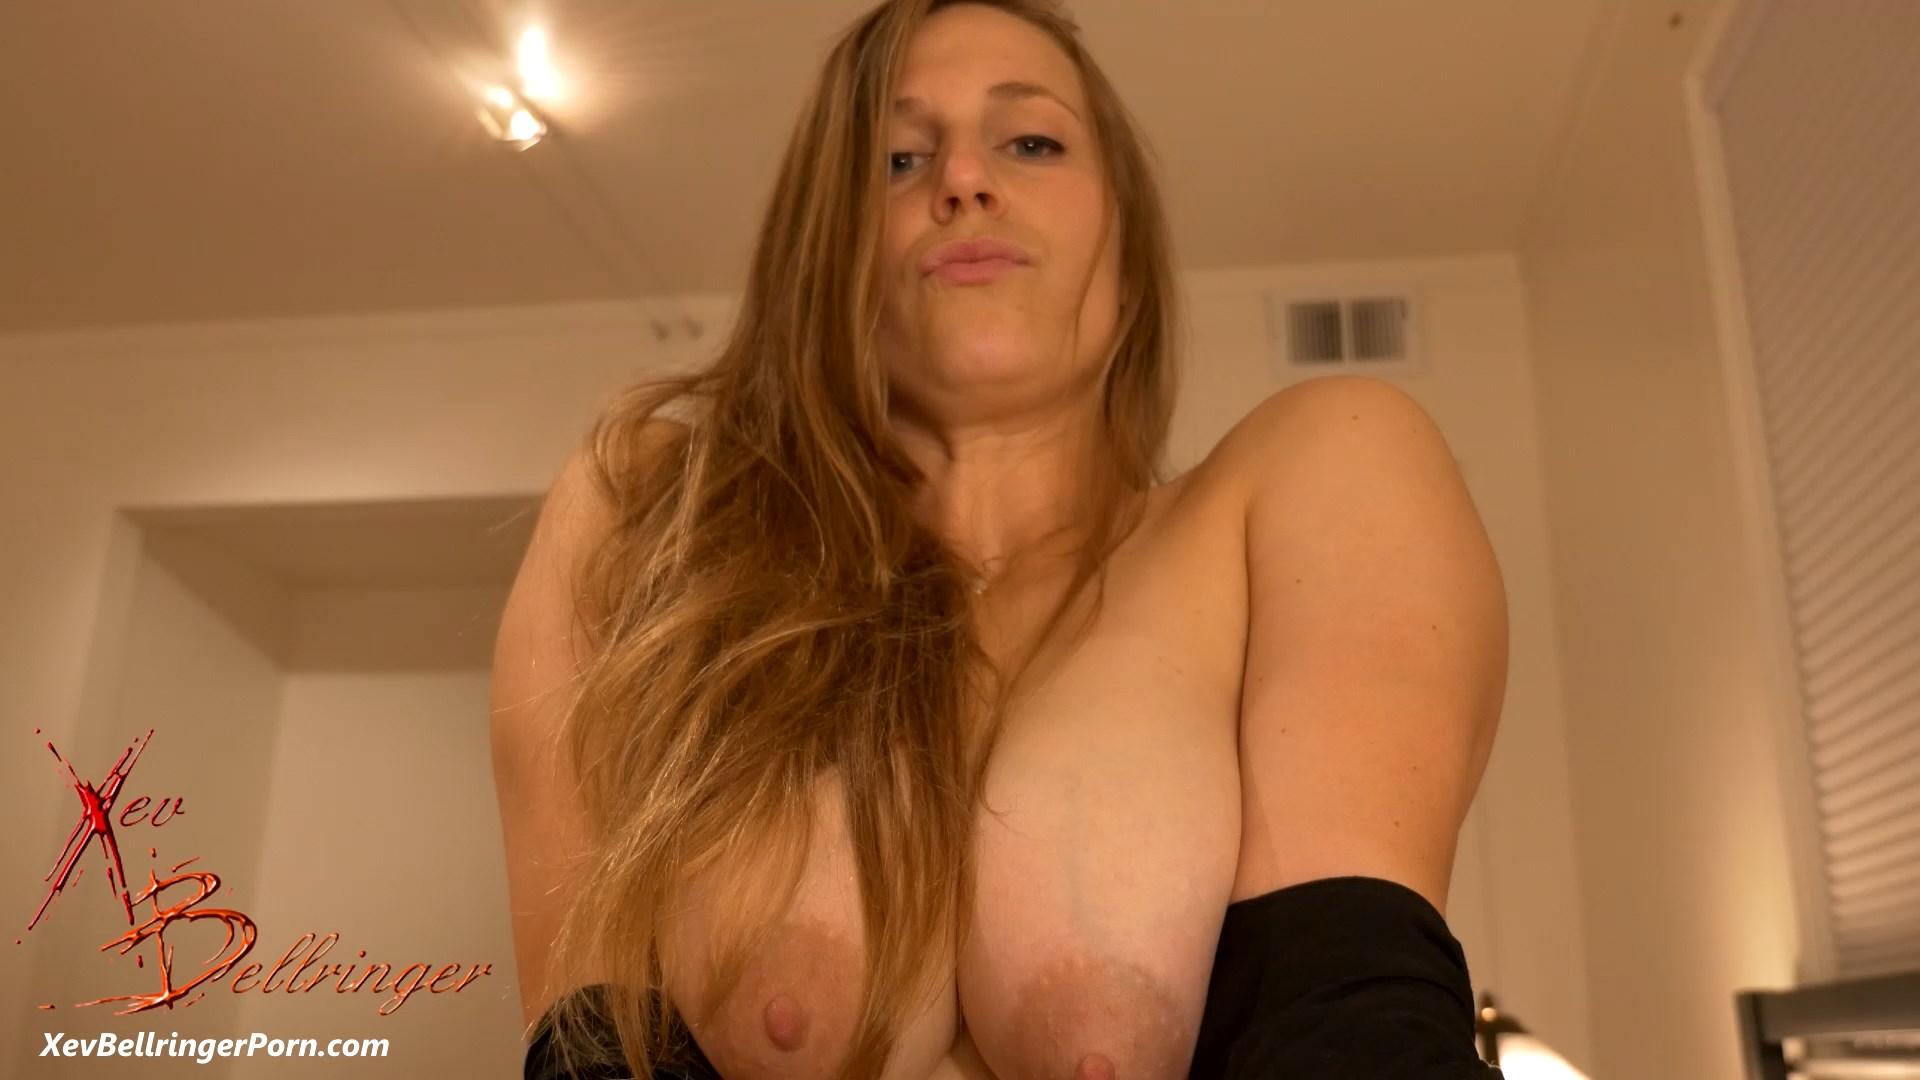 Mommy's Tight Vagina - Xev Bellringer